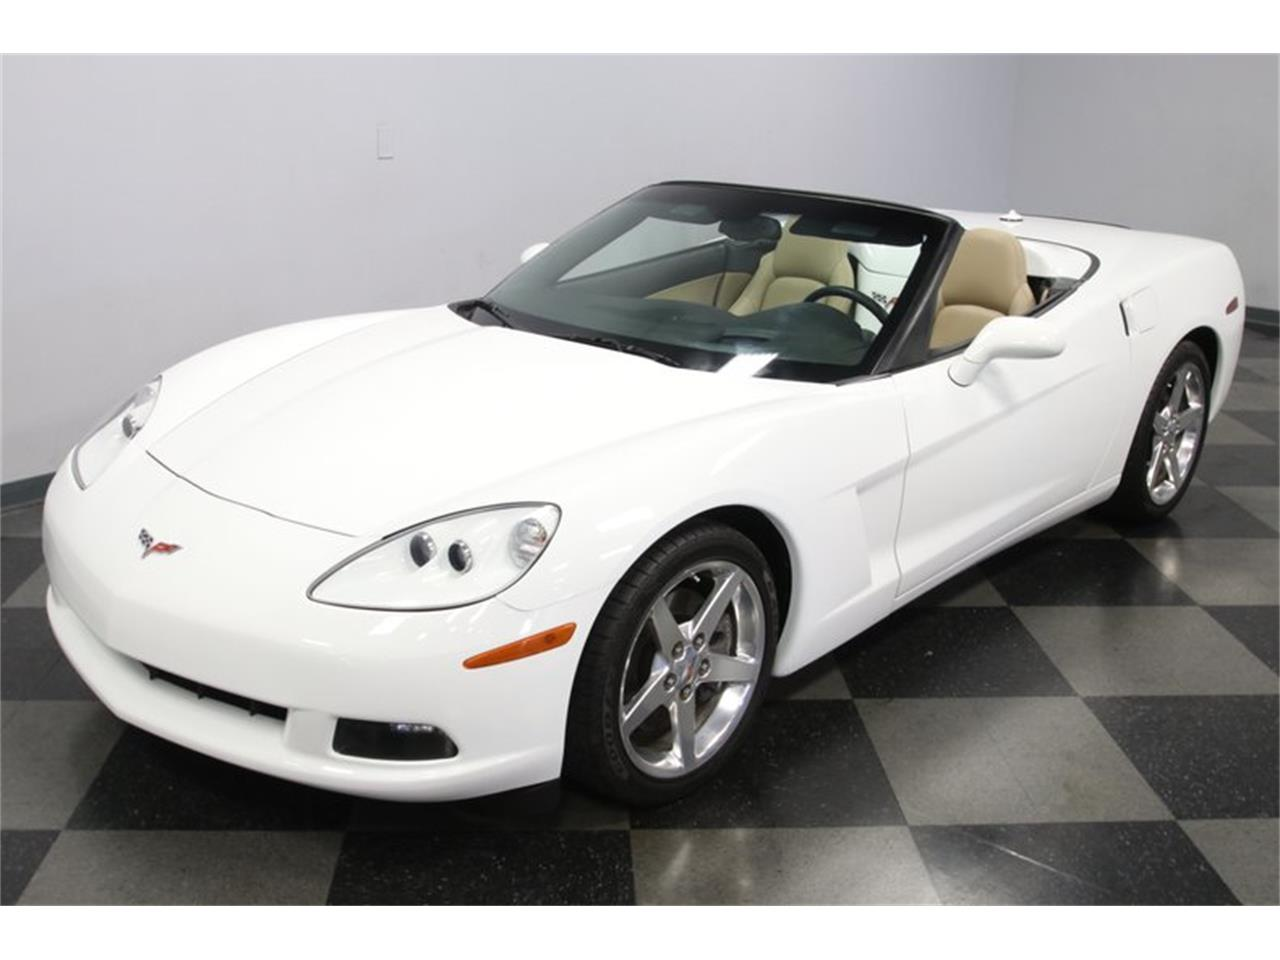 2005 Chevrolet Corvette (CC-1388799) for sale in Concord, North Carolina